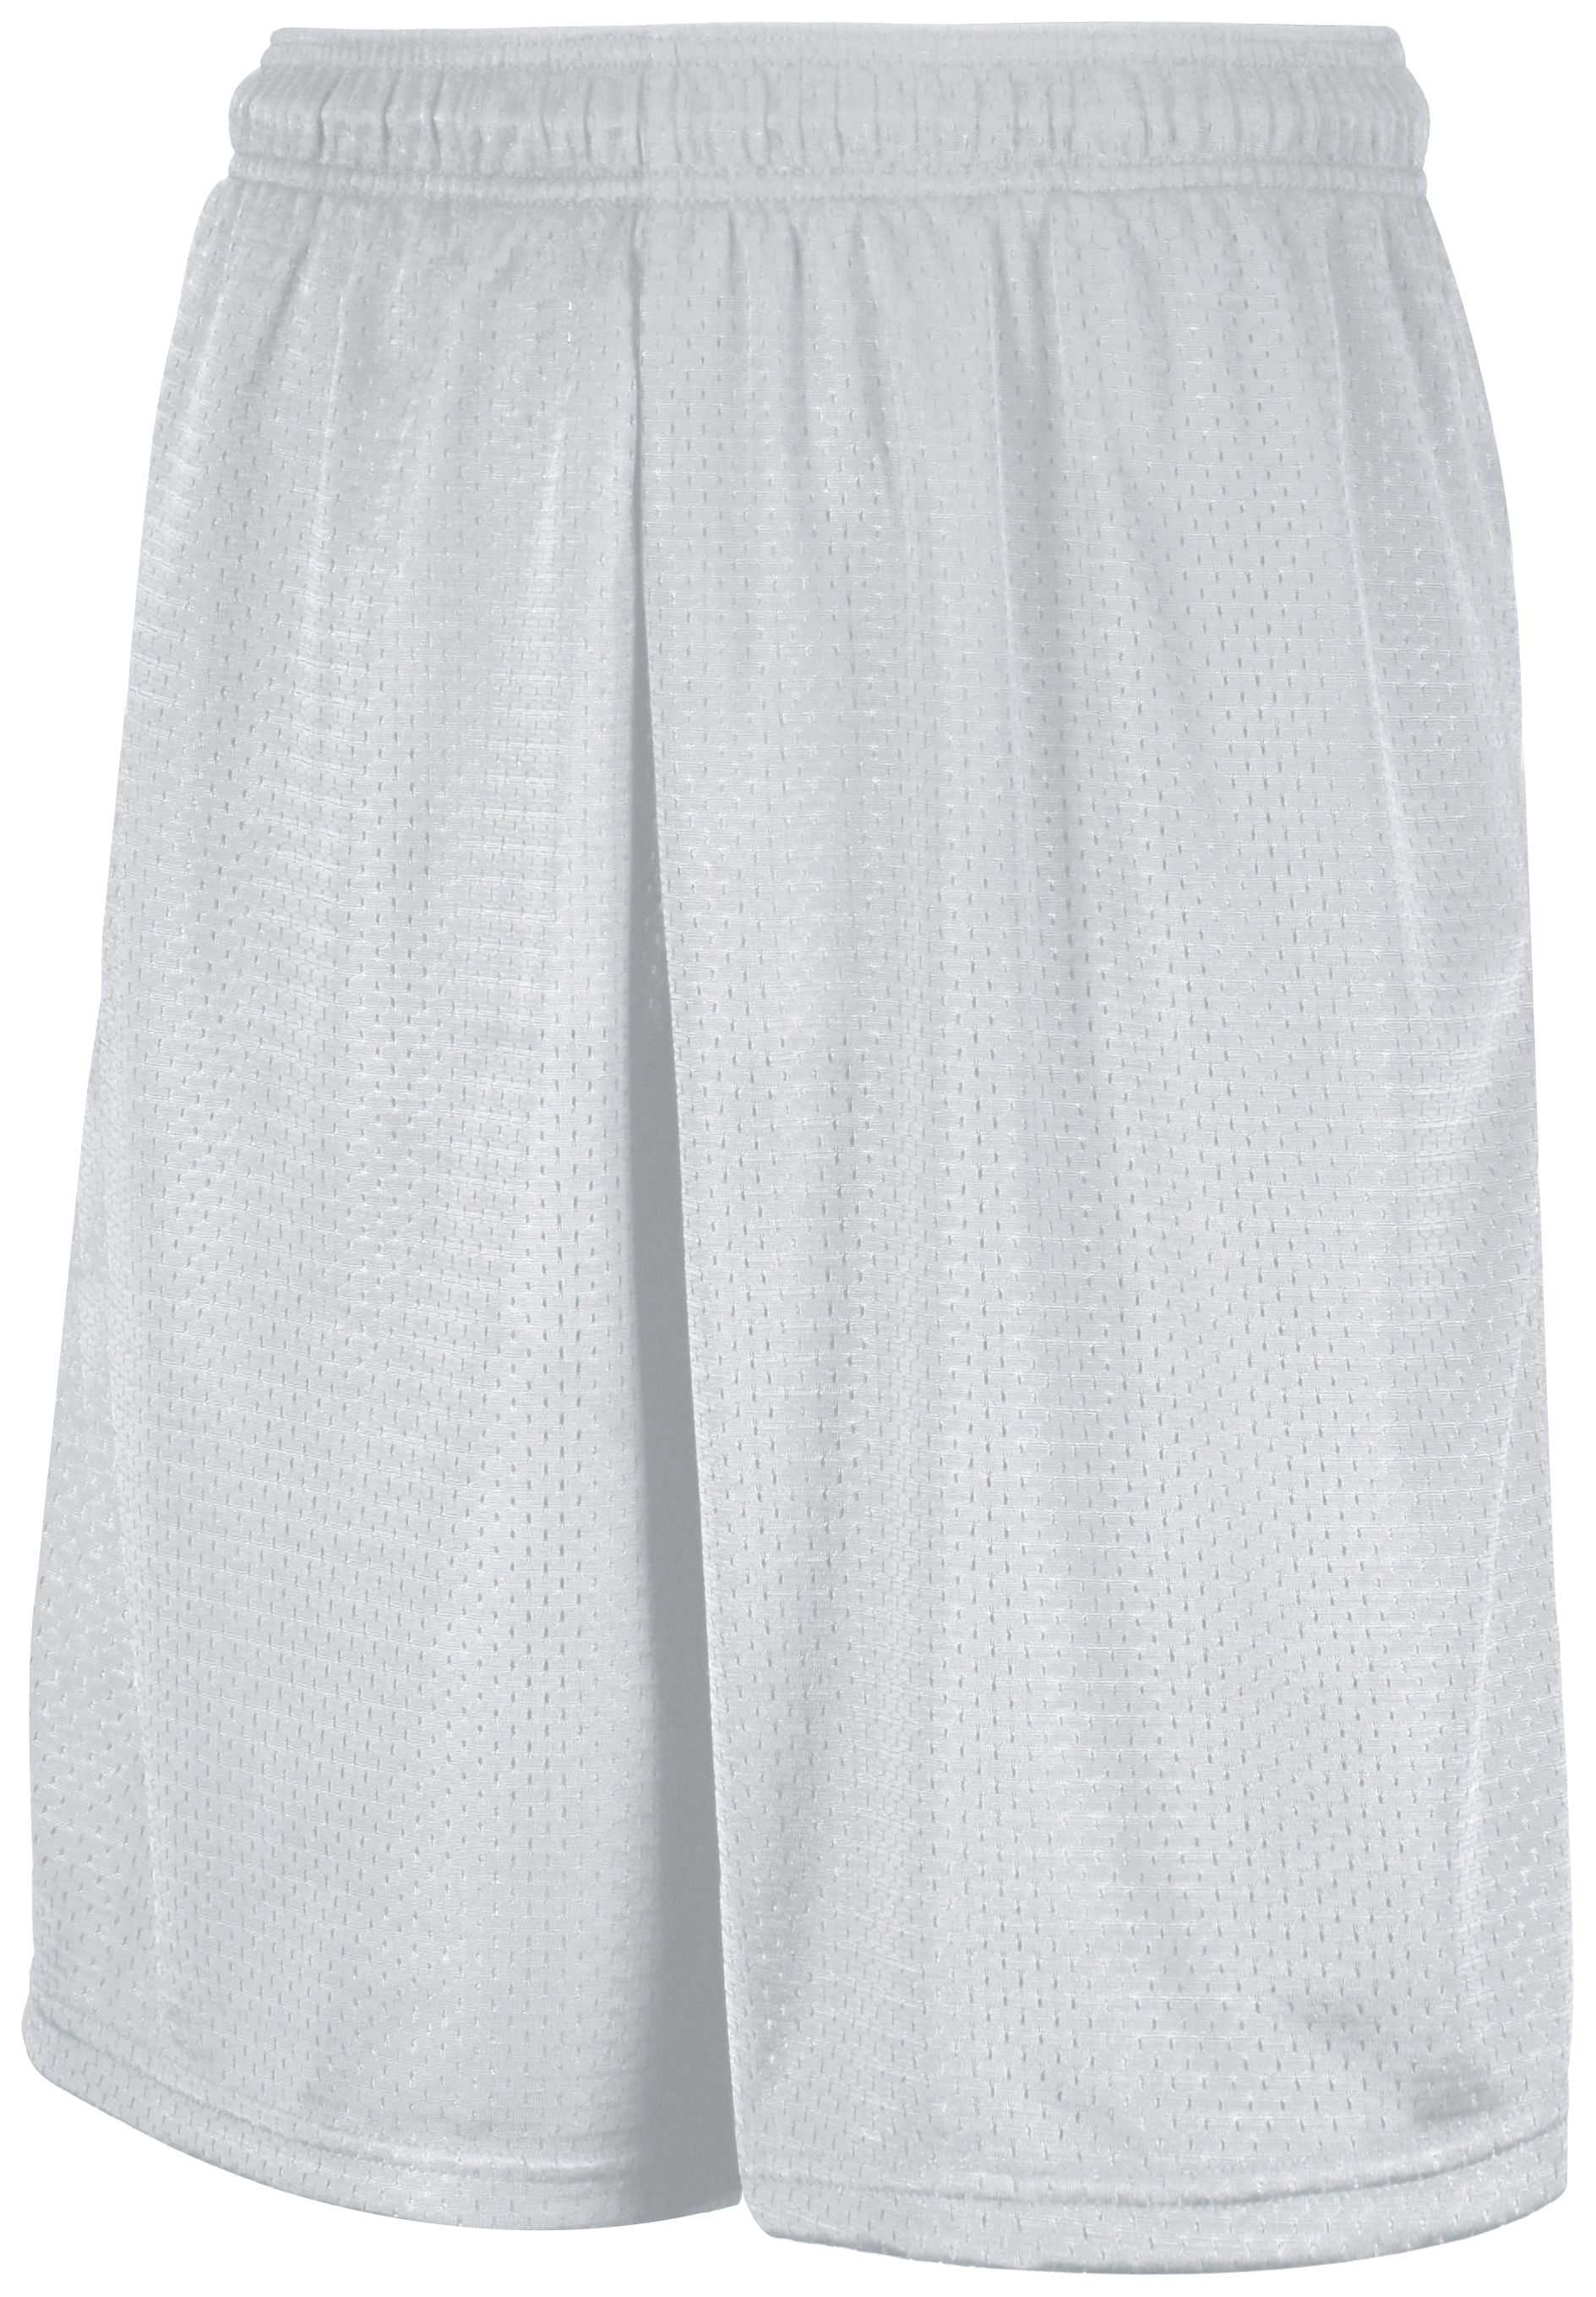 Mesh Shorts With Pockets - White